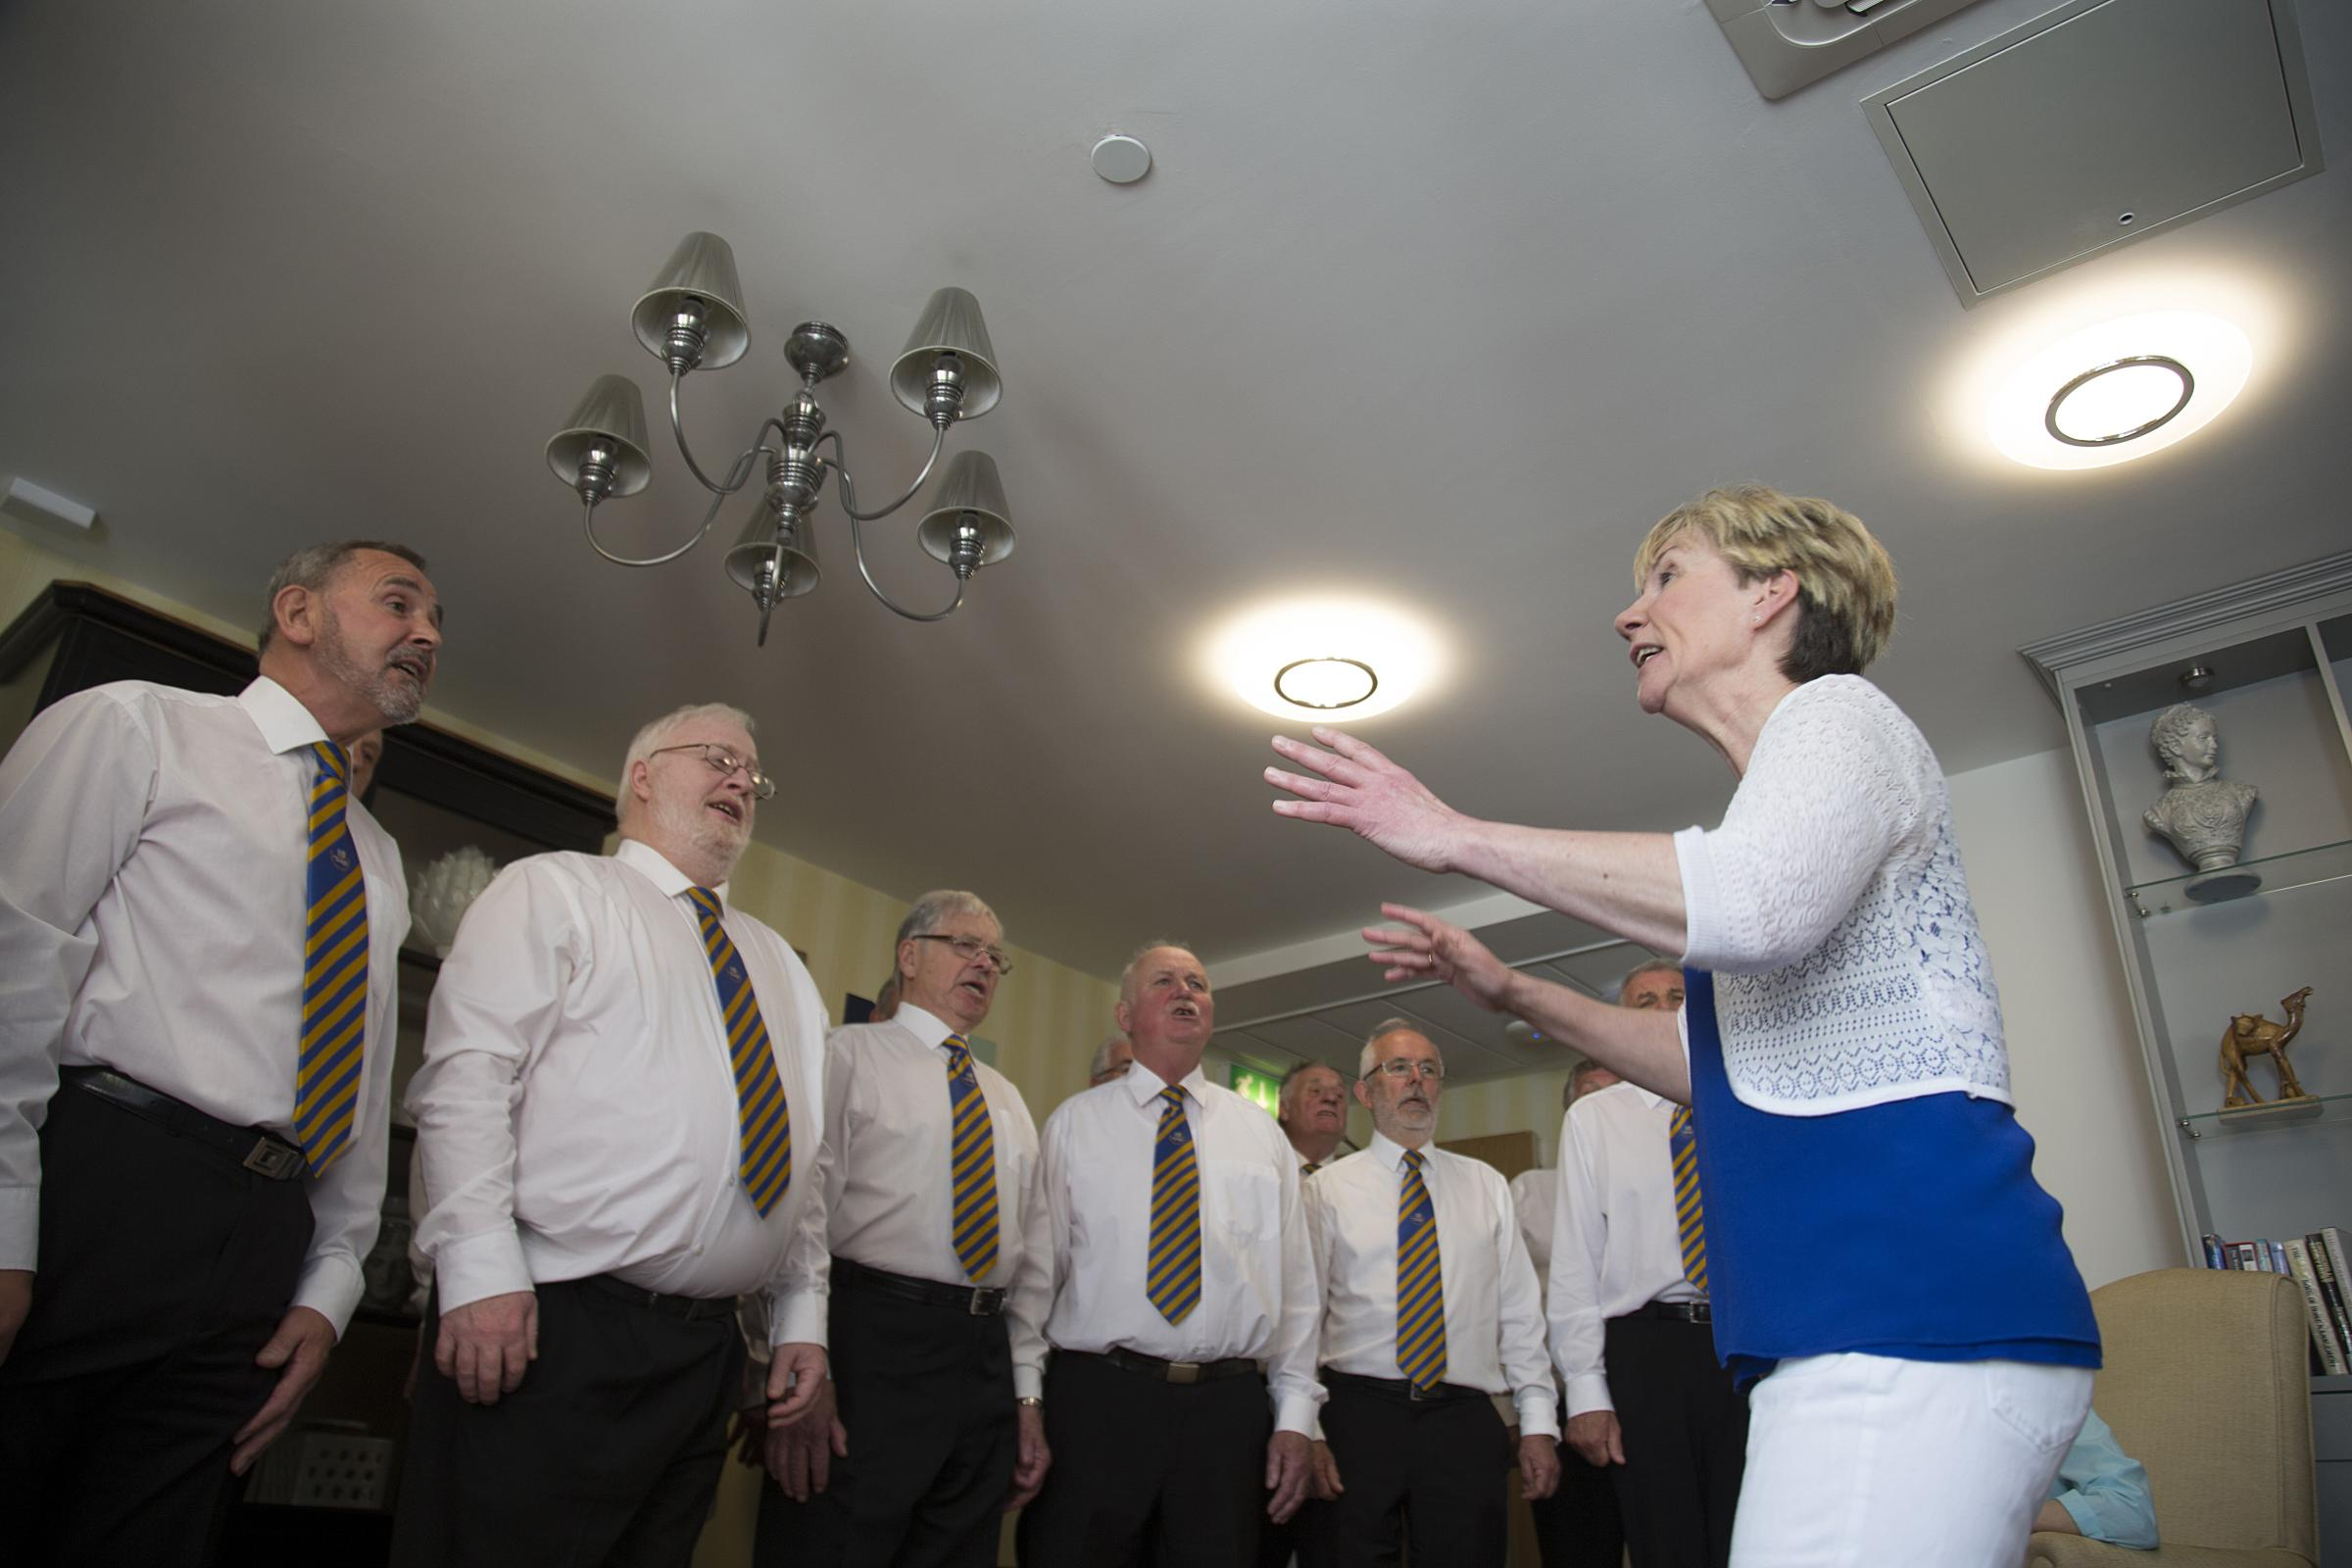 Barry Male Voice Choir at Llandaff Care Home